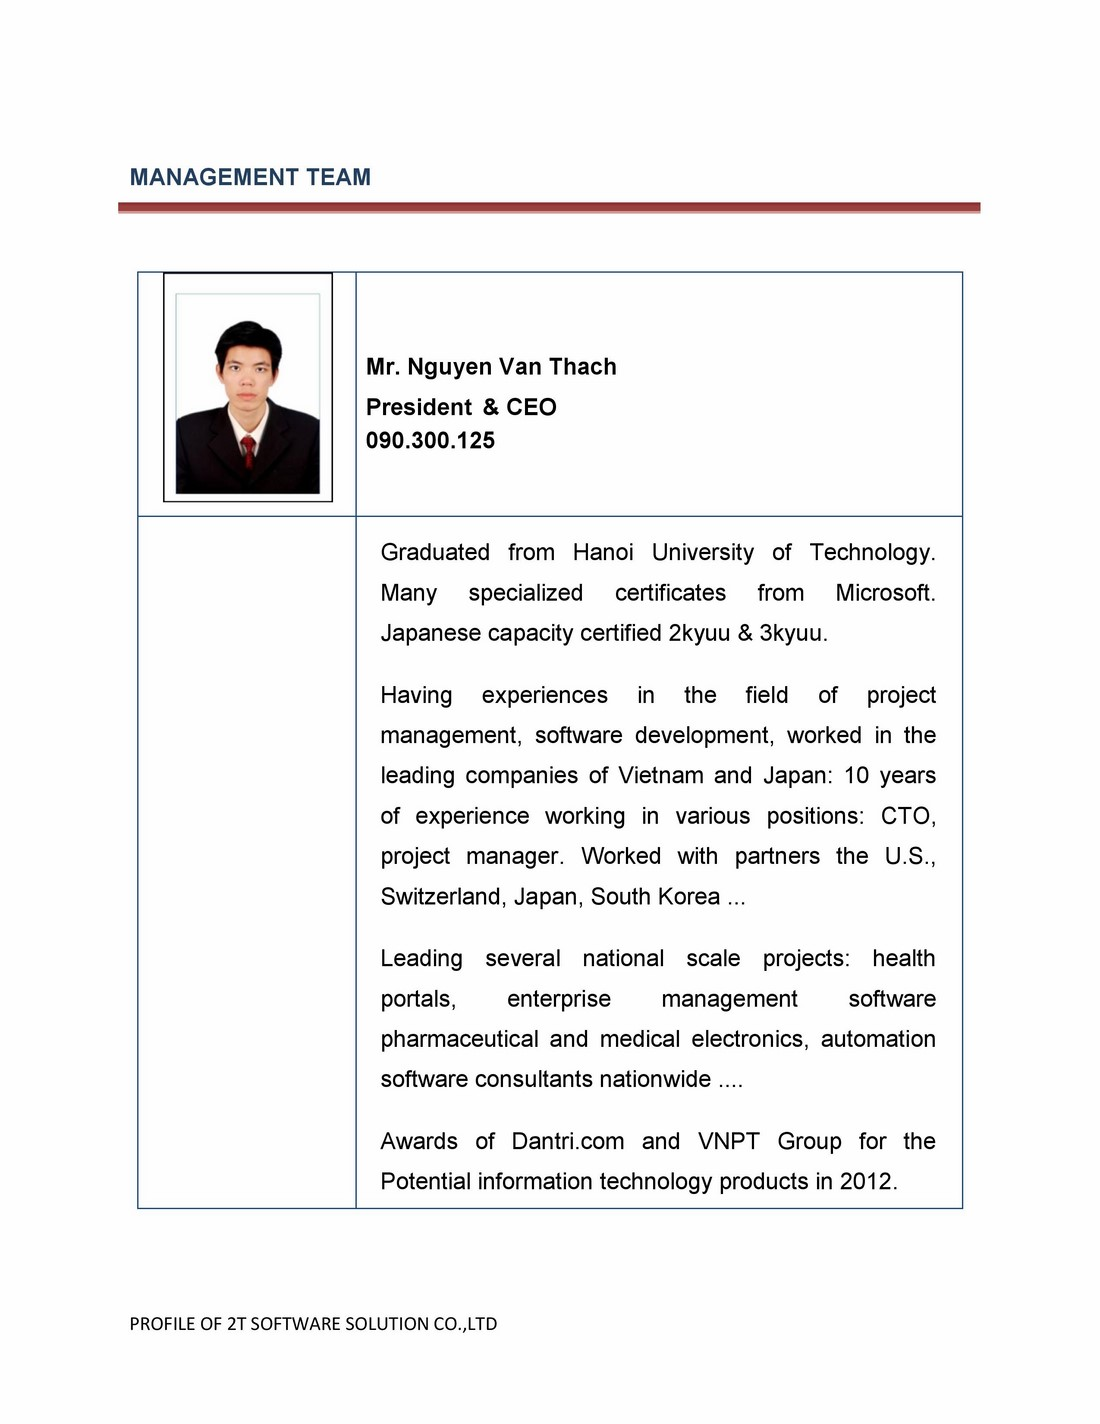 2TS Profile_eng-page-005 (Copy)